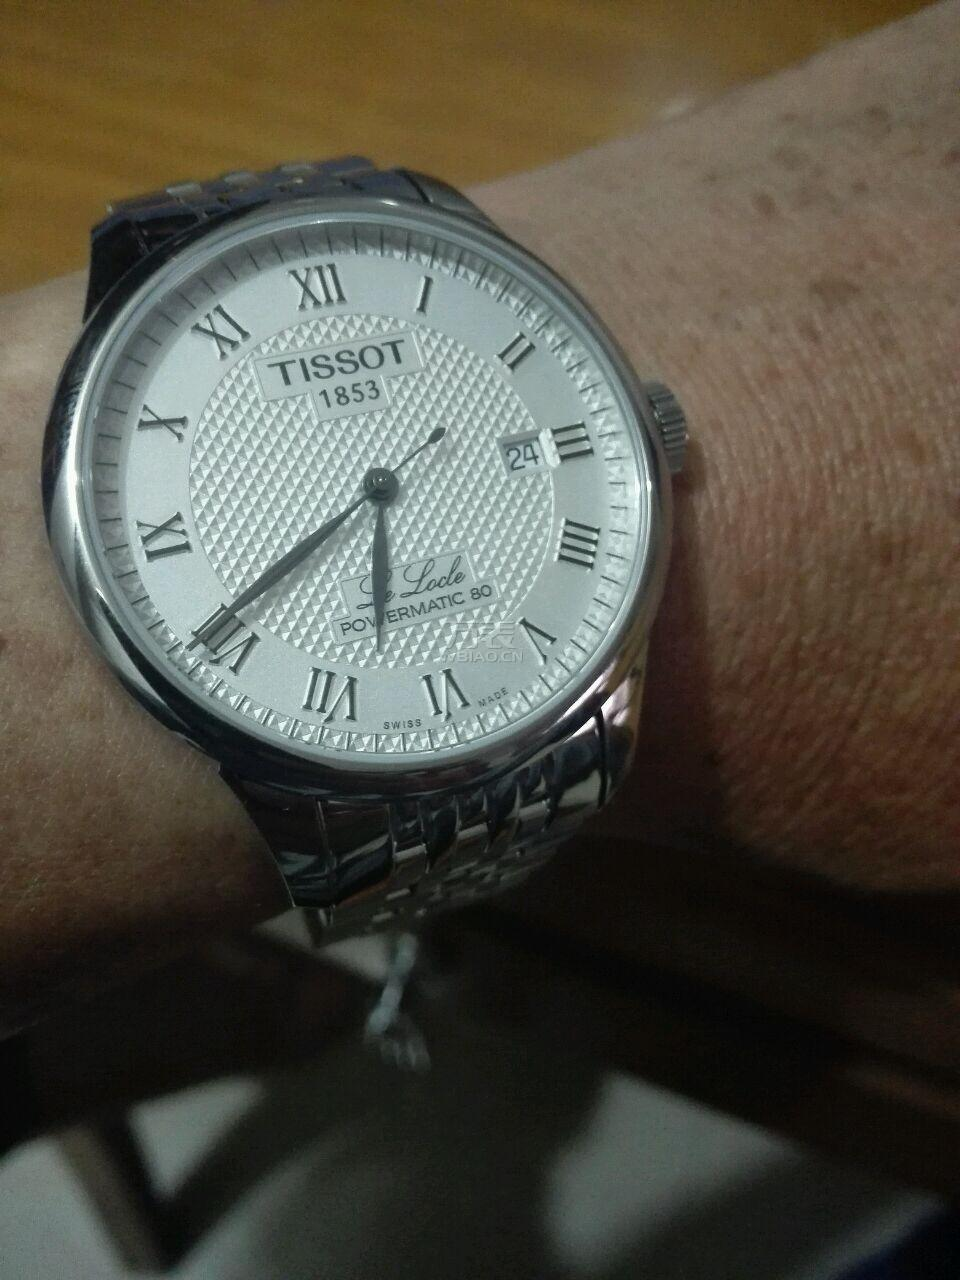 The elegant and simple Tissot will enhance the charm of the men wearers perfectly.